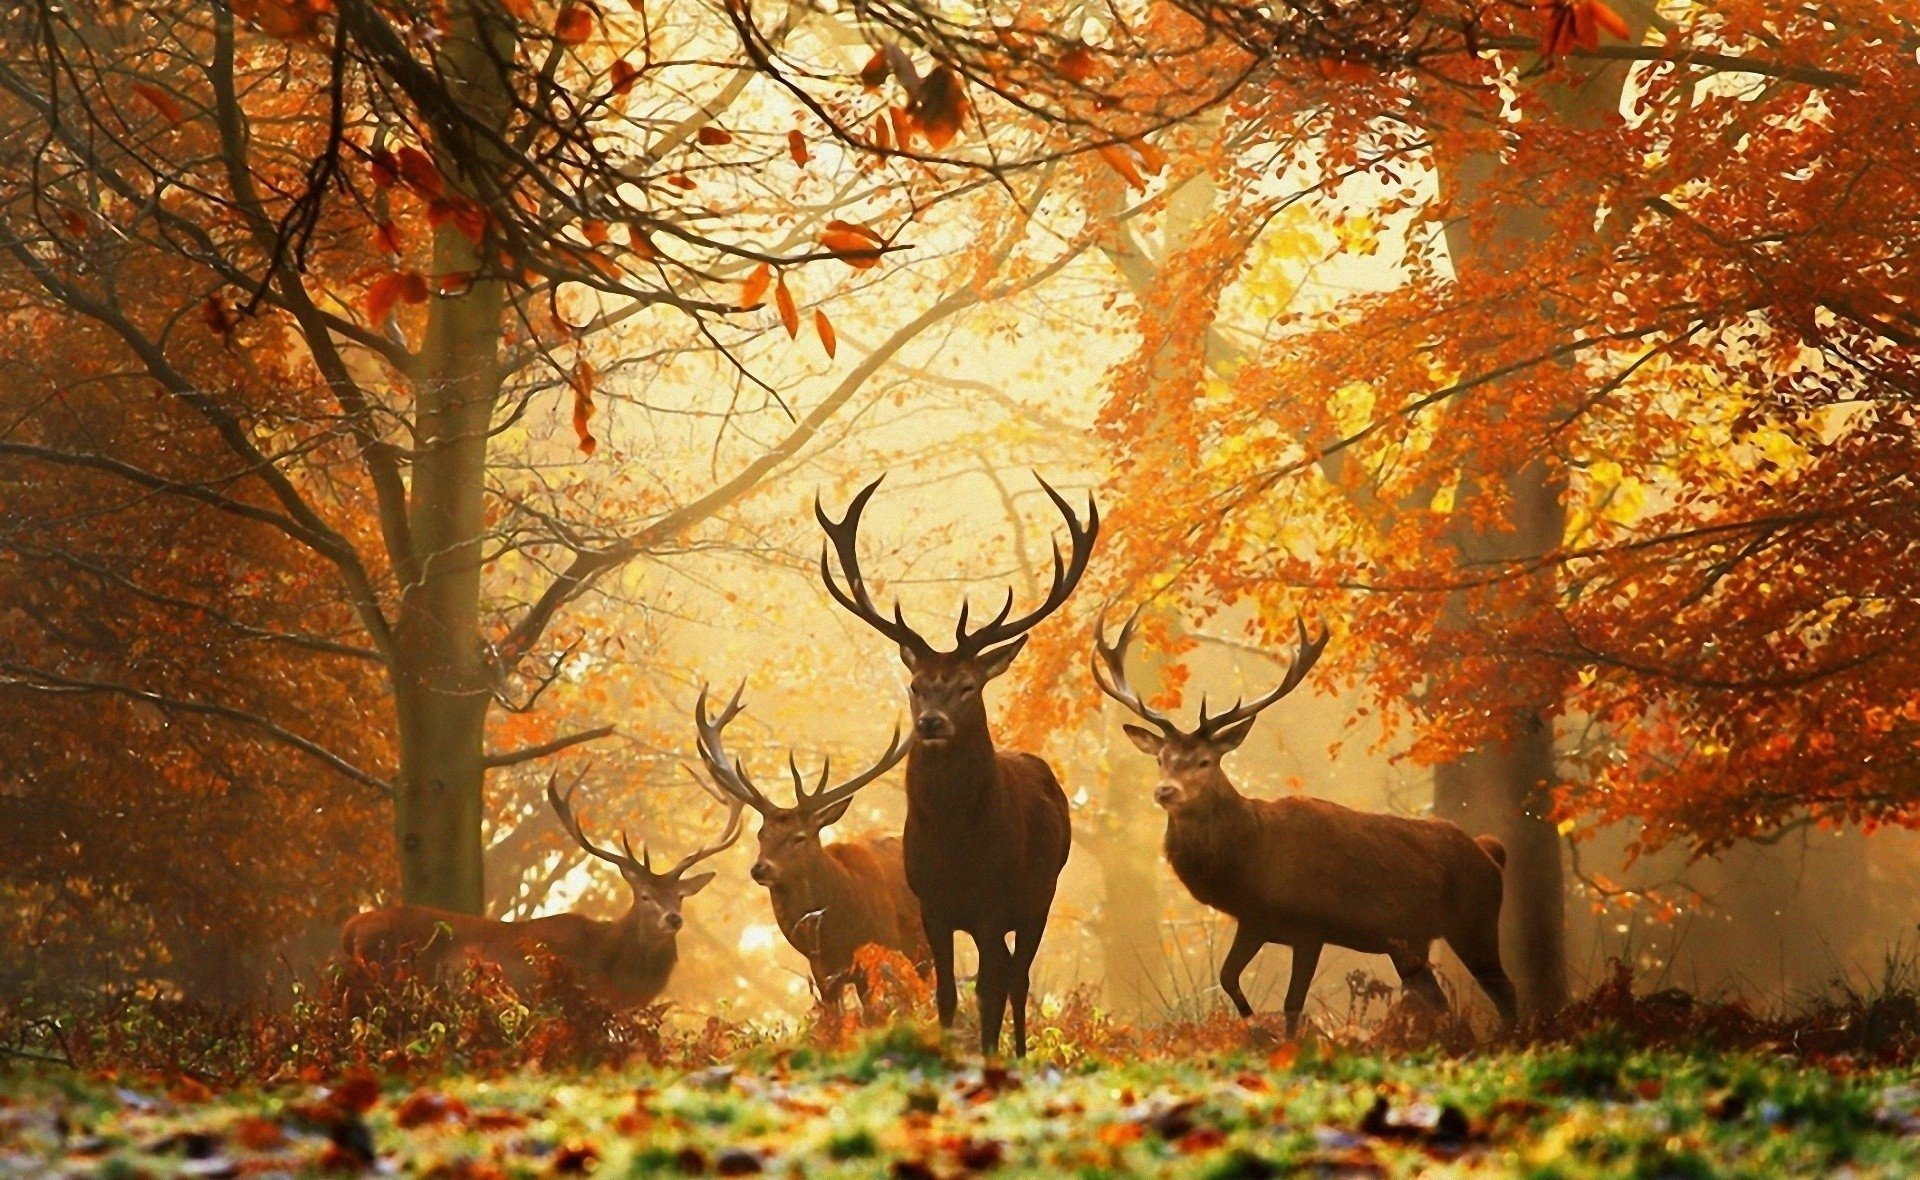 Best Wallpaper Forest Deer - thumb-1920-298534  Photograph_611537 .jpg